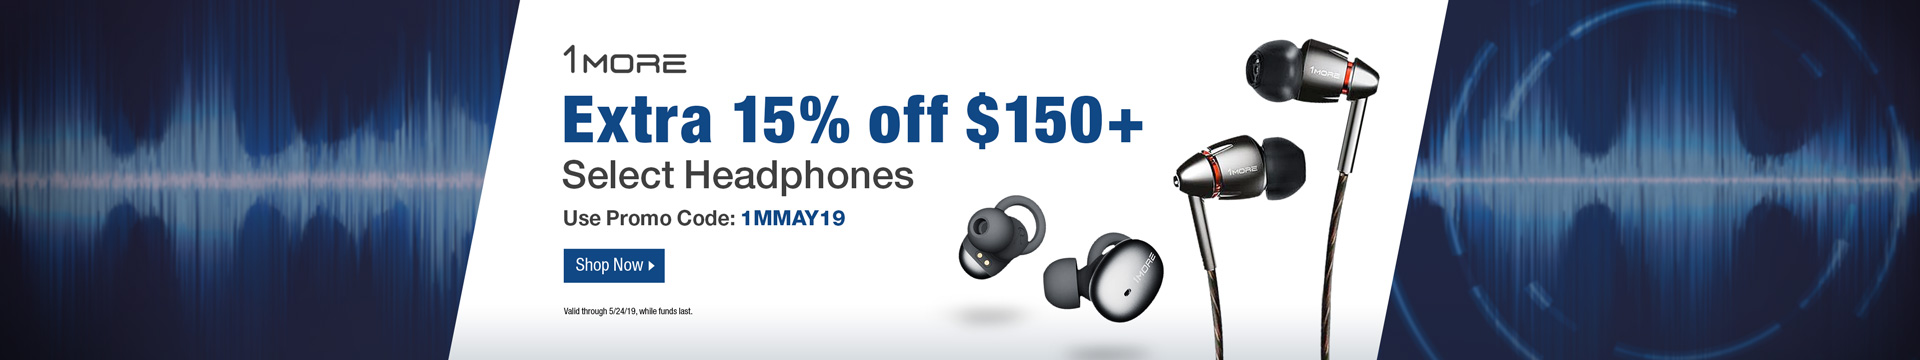 Extra 15% off $150+ select headphones